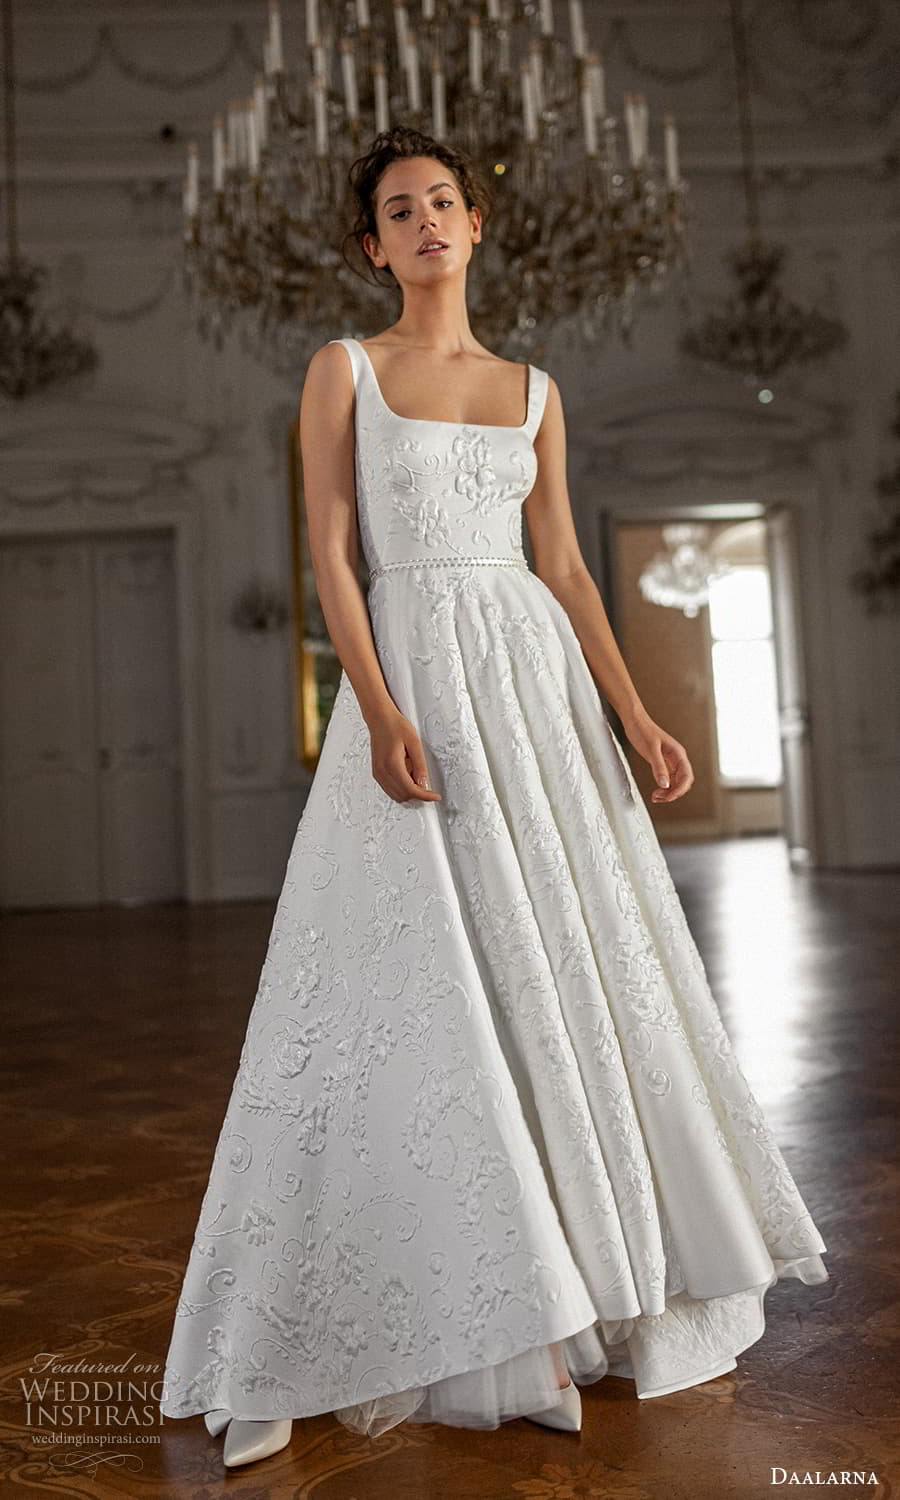 daalarna spring 2022 bridal sleeveless thick straps square neckline embellished a line ball gown wedding dress (11) fv